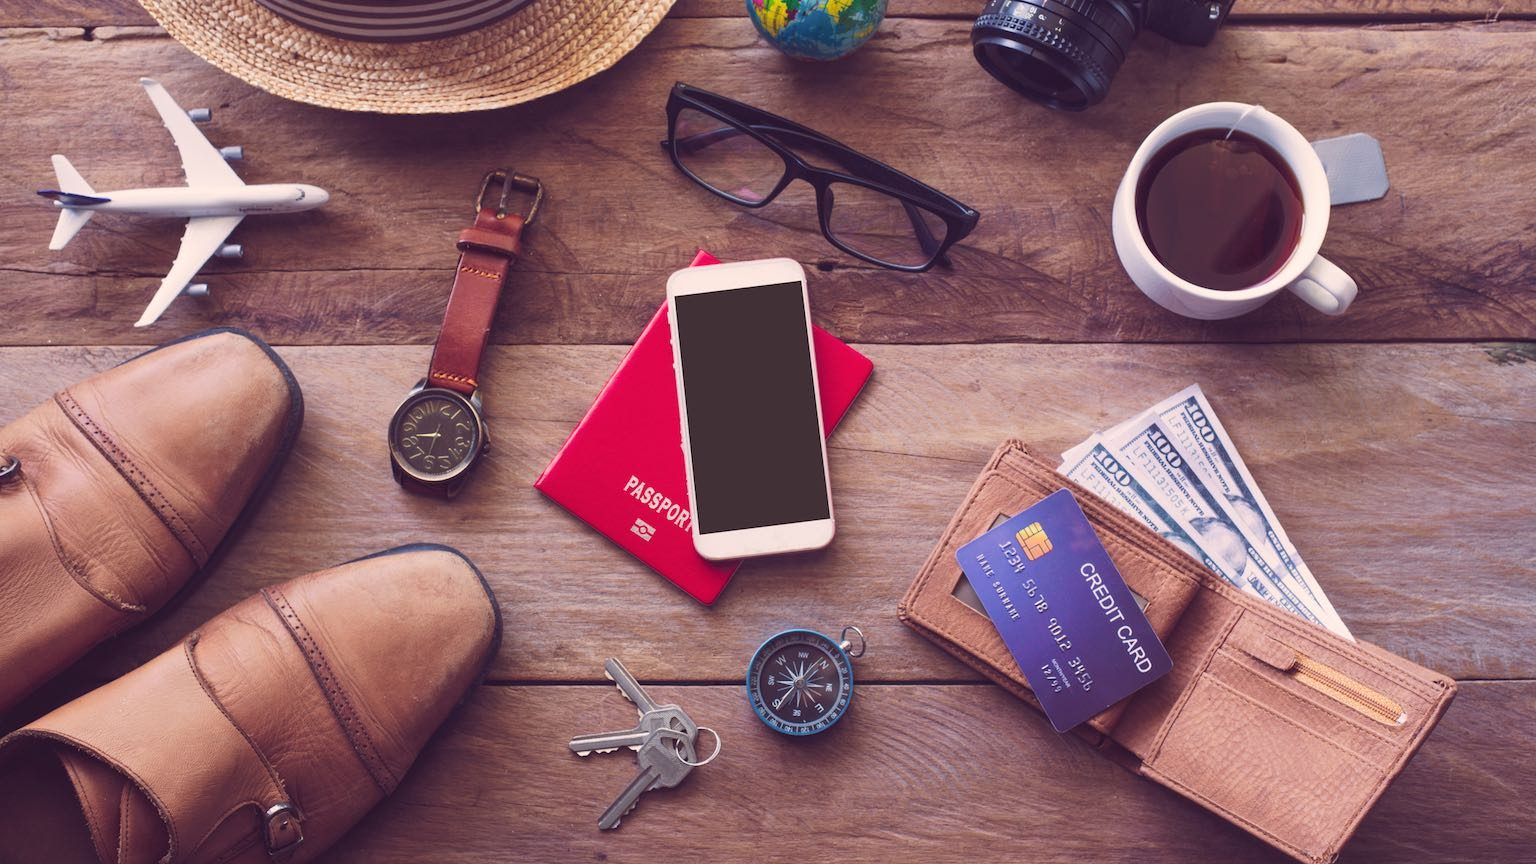 Flat lay of travel essentials including credit card, cash, passport and glasses.